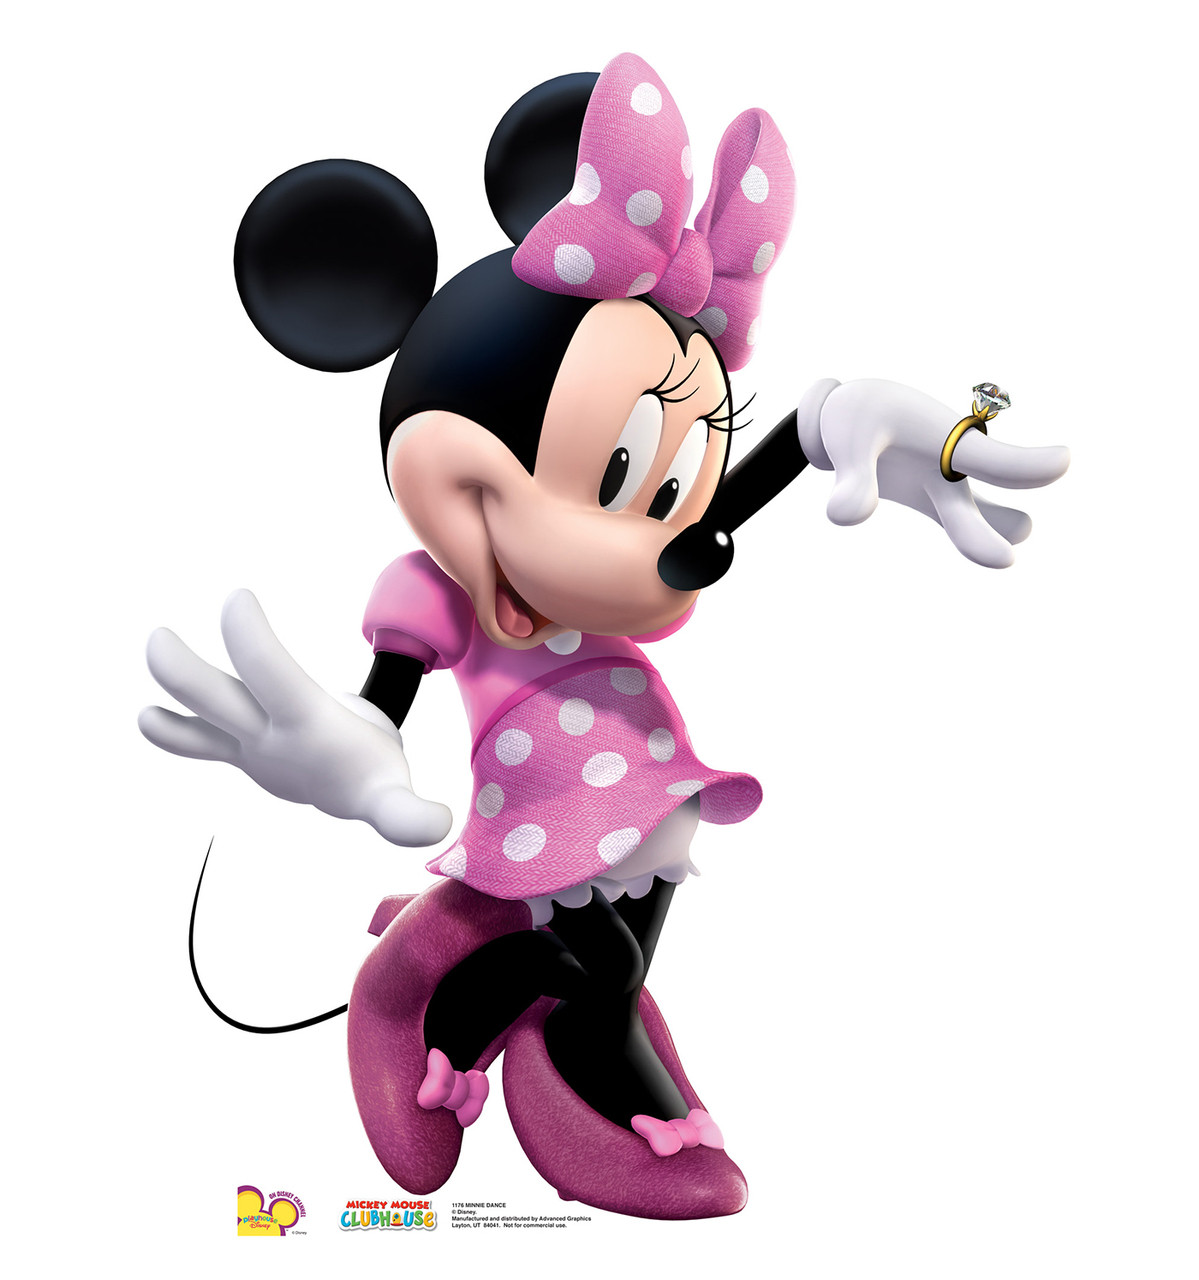 Life-size Minnie Mouse Dancing Cardboard Standup